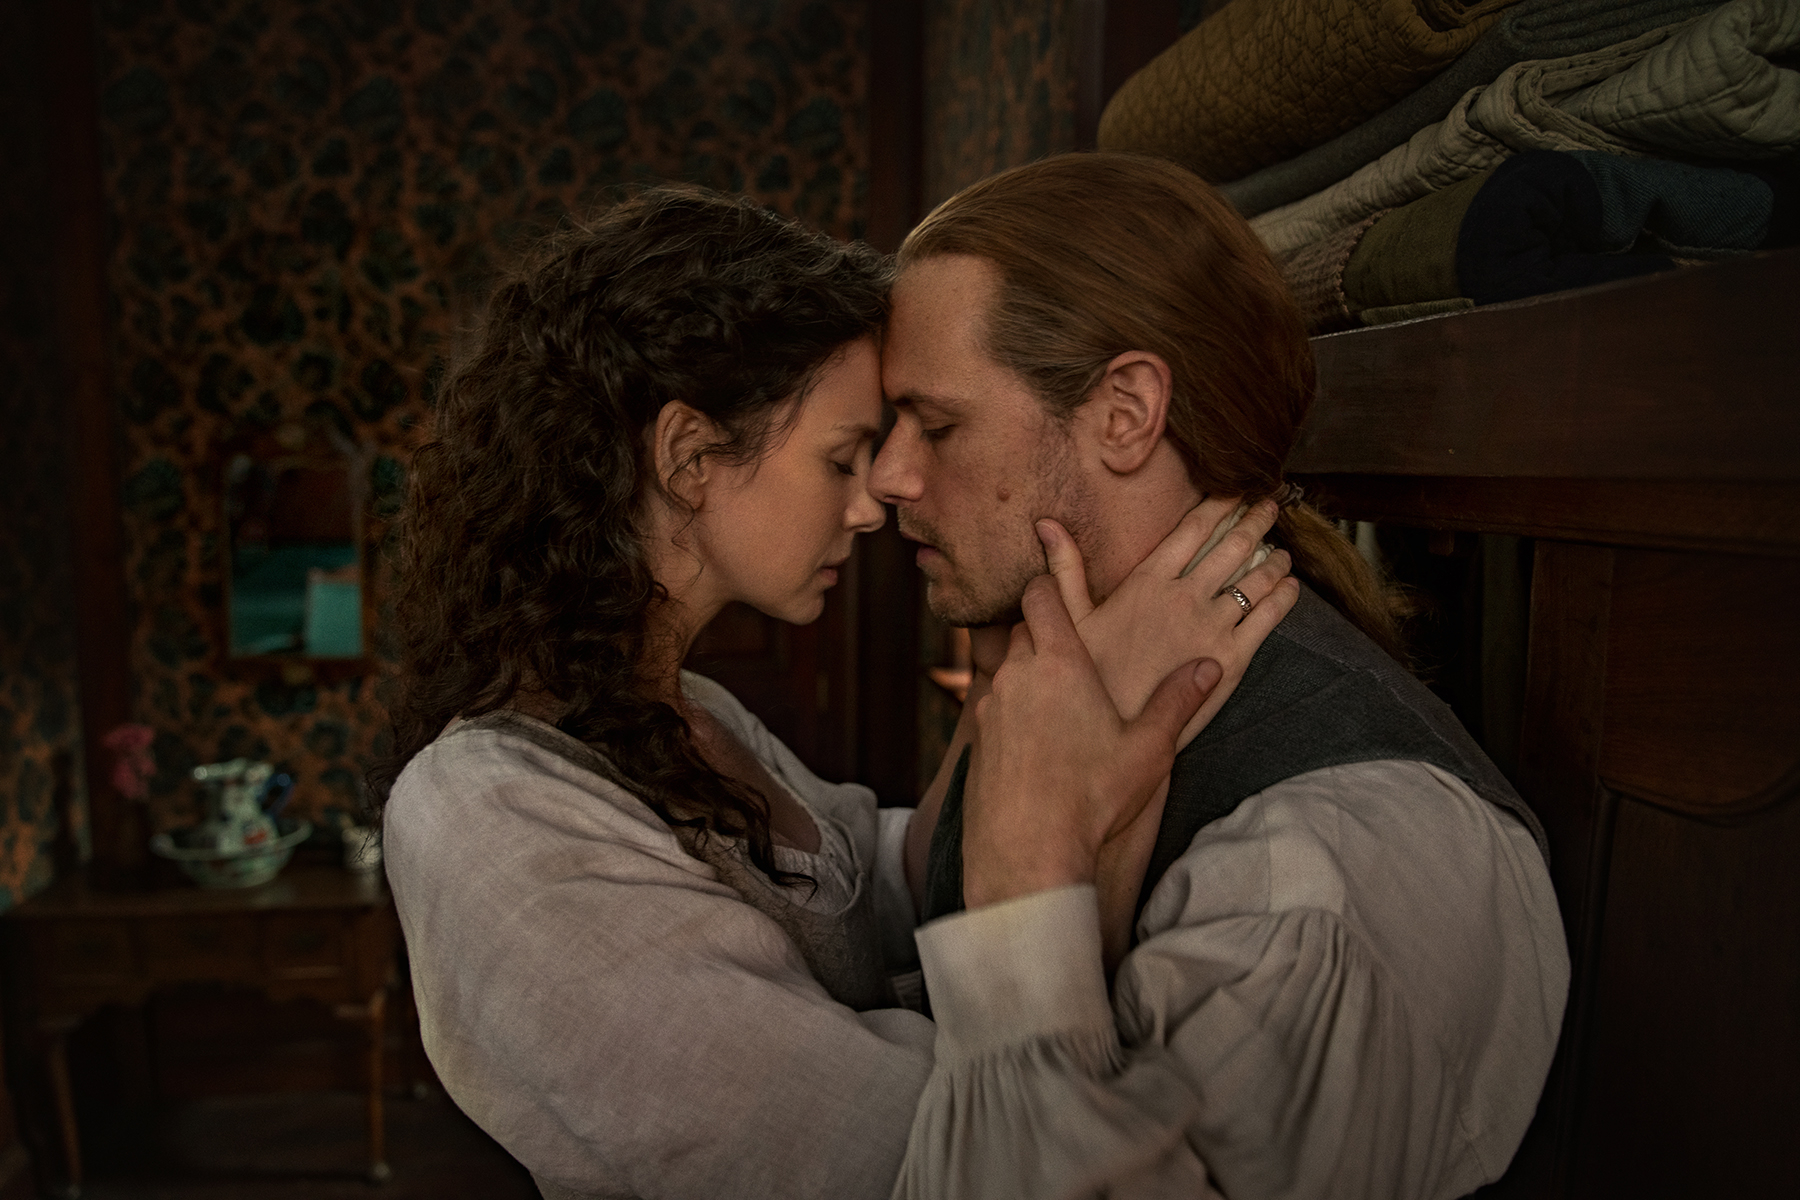 STARZ Announces 'Outlander' Season 6 Premiere Date And First Look